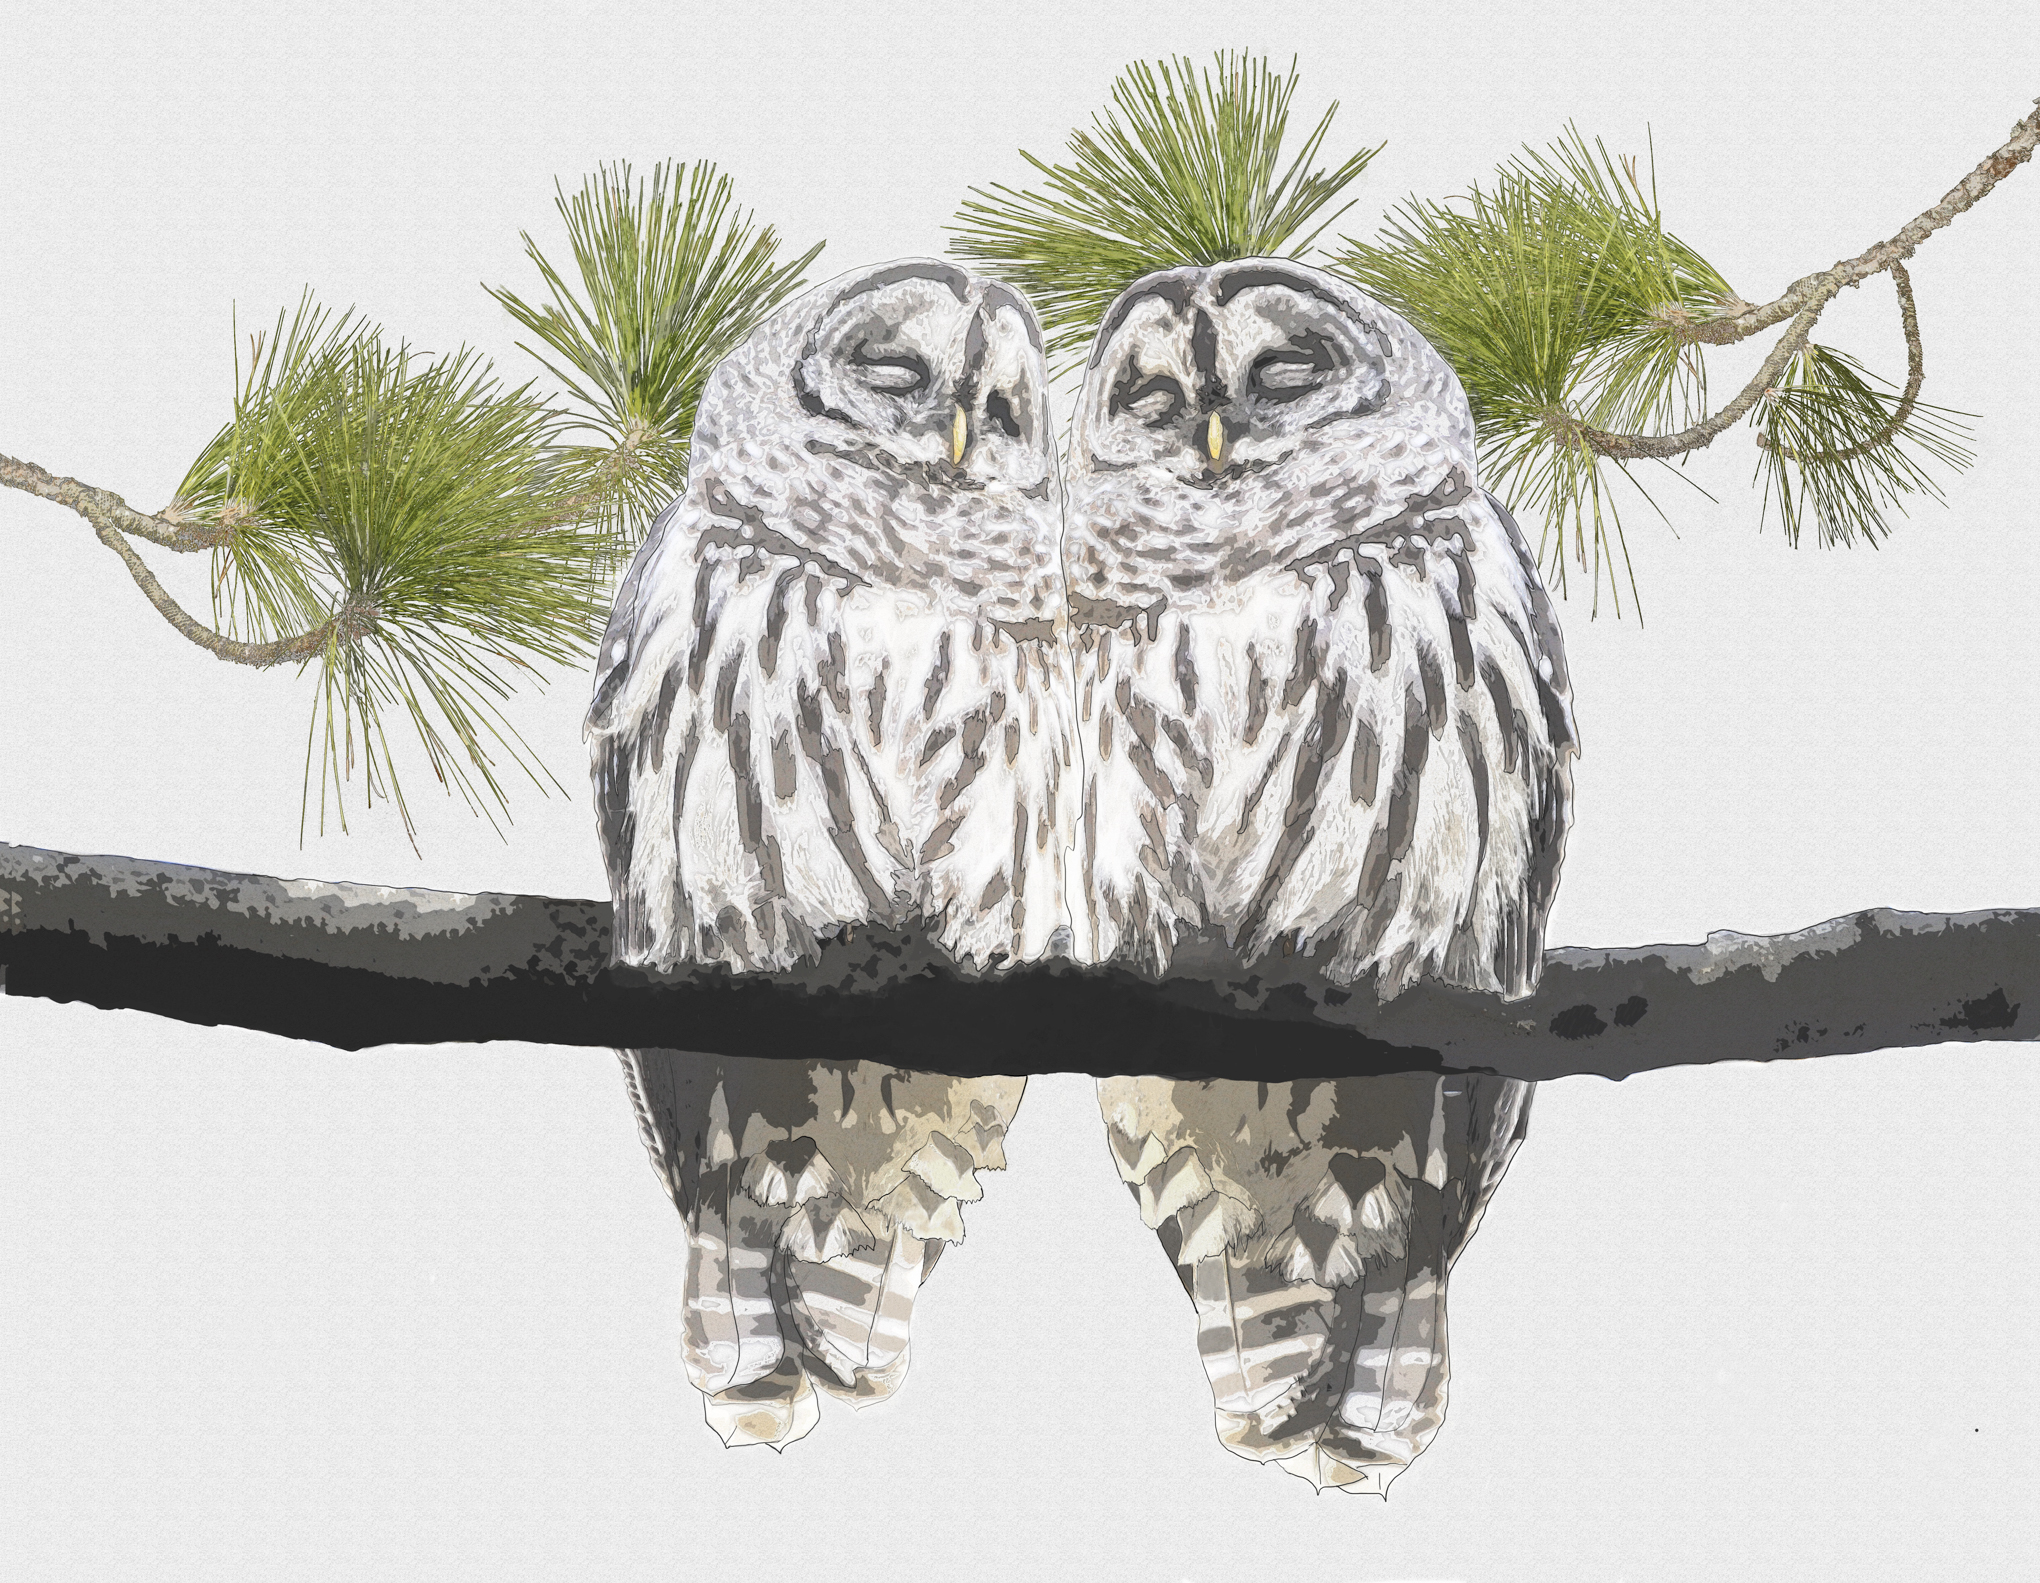 Barred Owls in Love